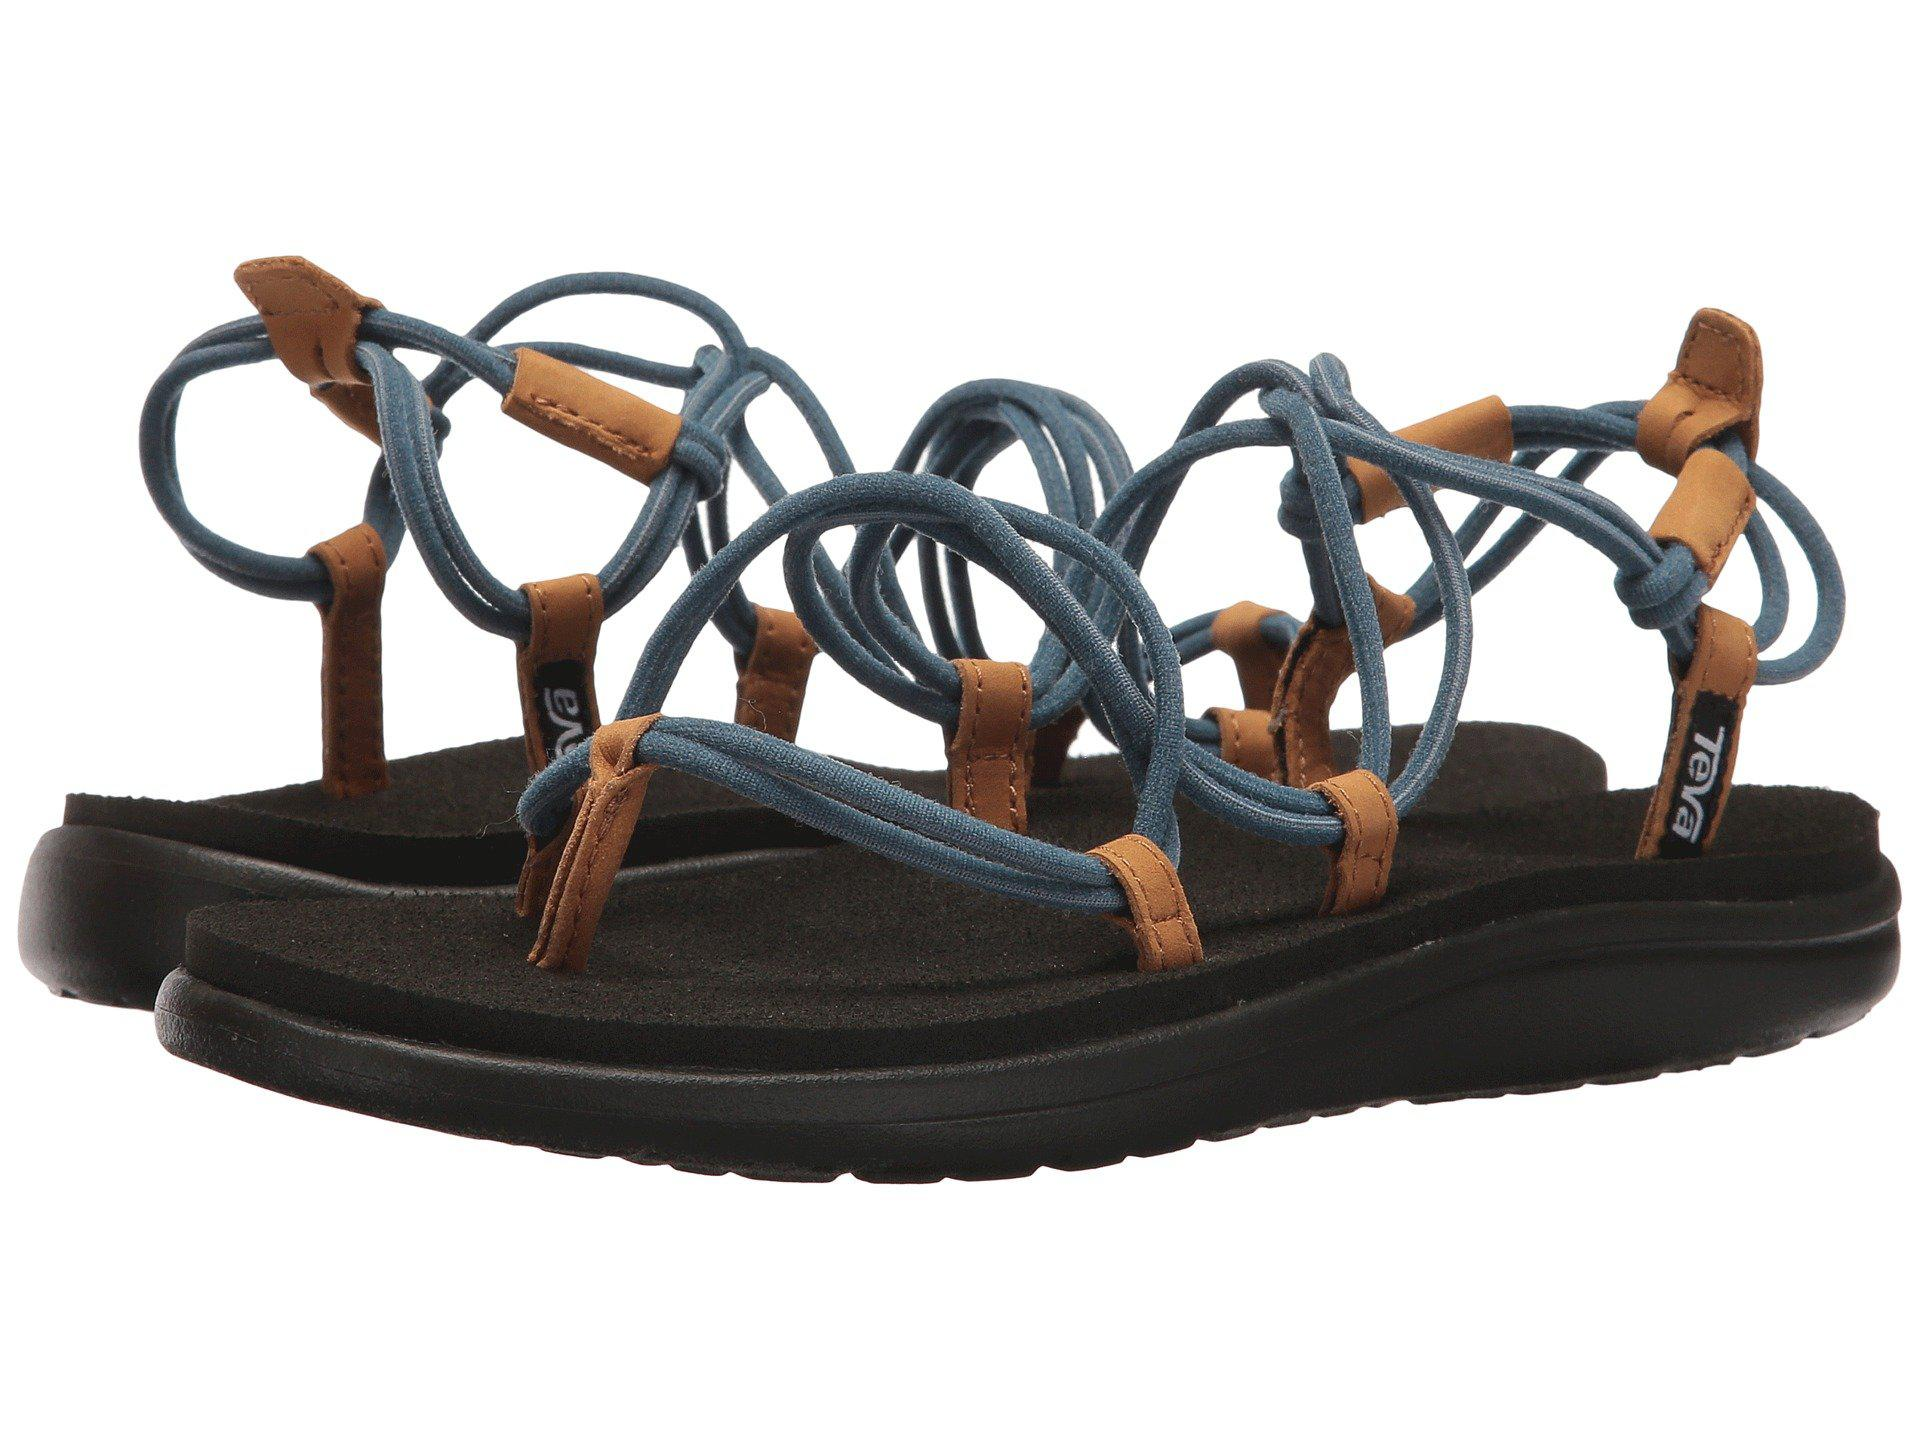 135ff1eb207fbd Slender looped straps and an amazingly cushy footbed will make this your  favorite sandal ...